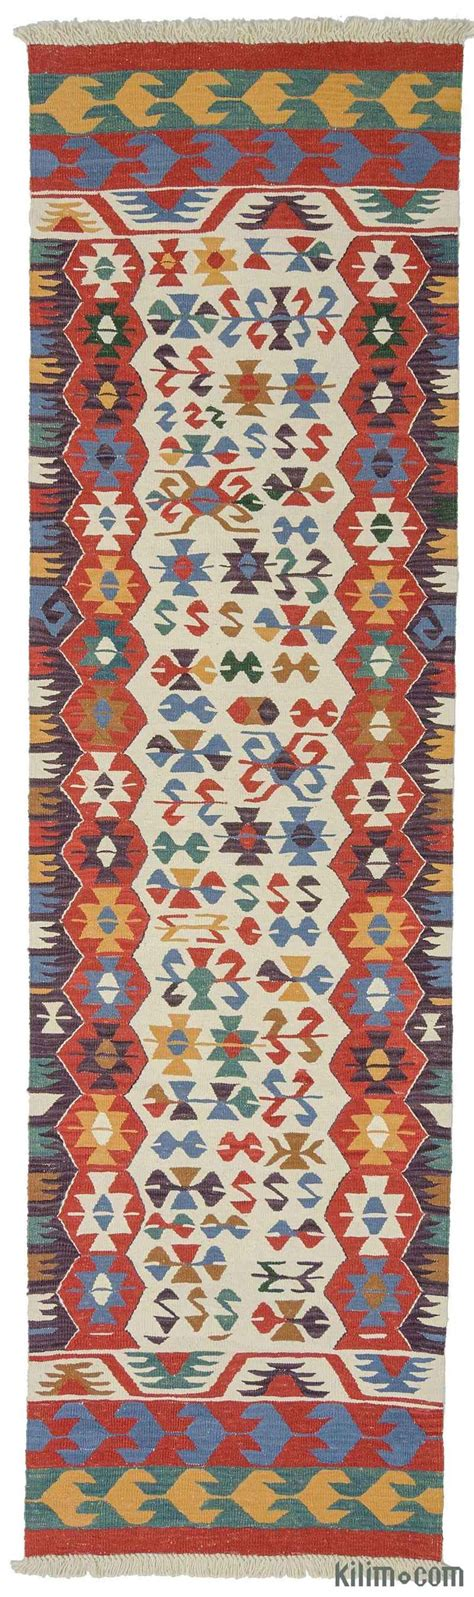 Kilim Runner Rug Sale by K0006426 Multicolor New Turkish Kilim Runner